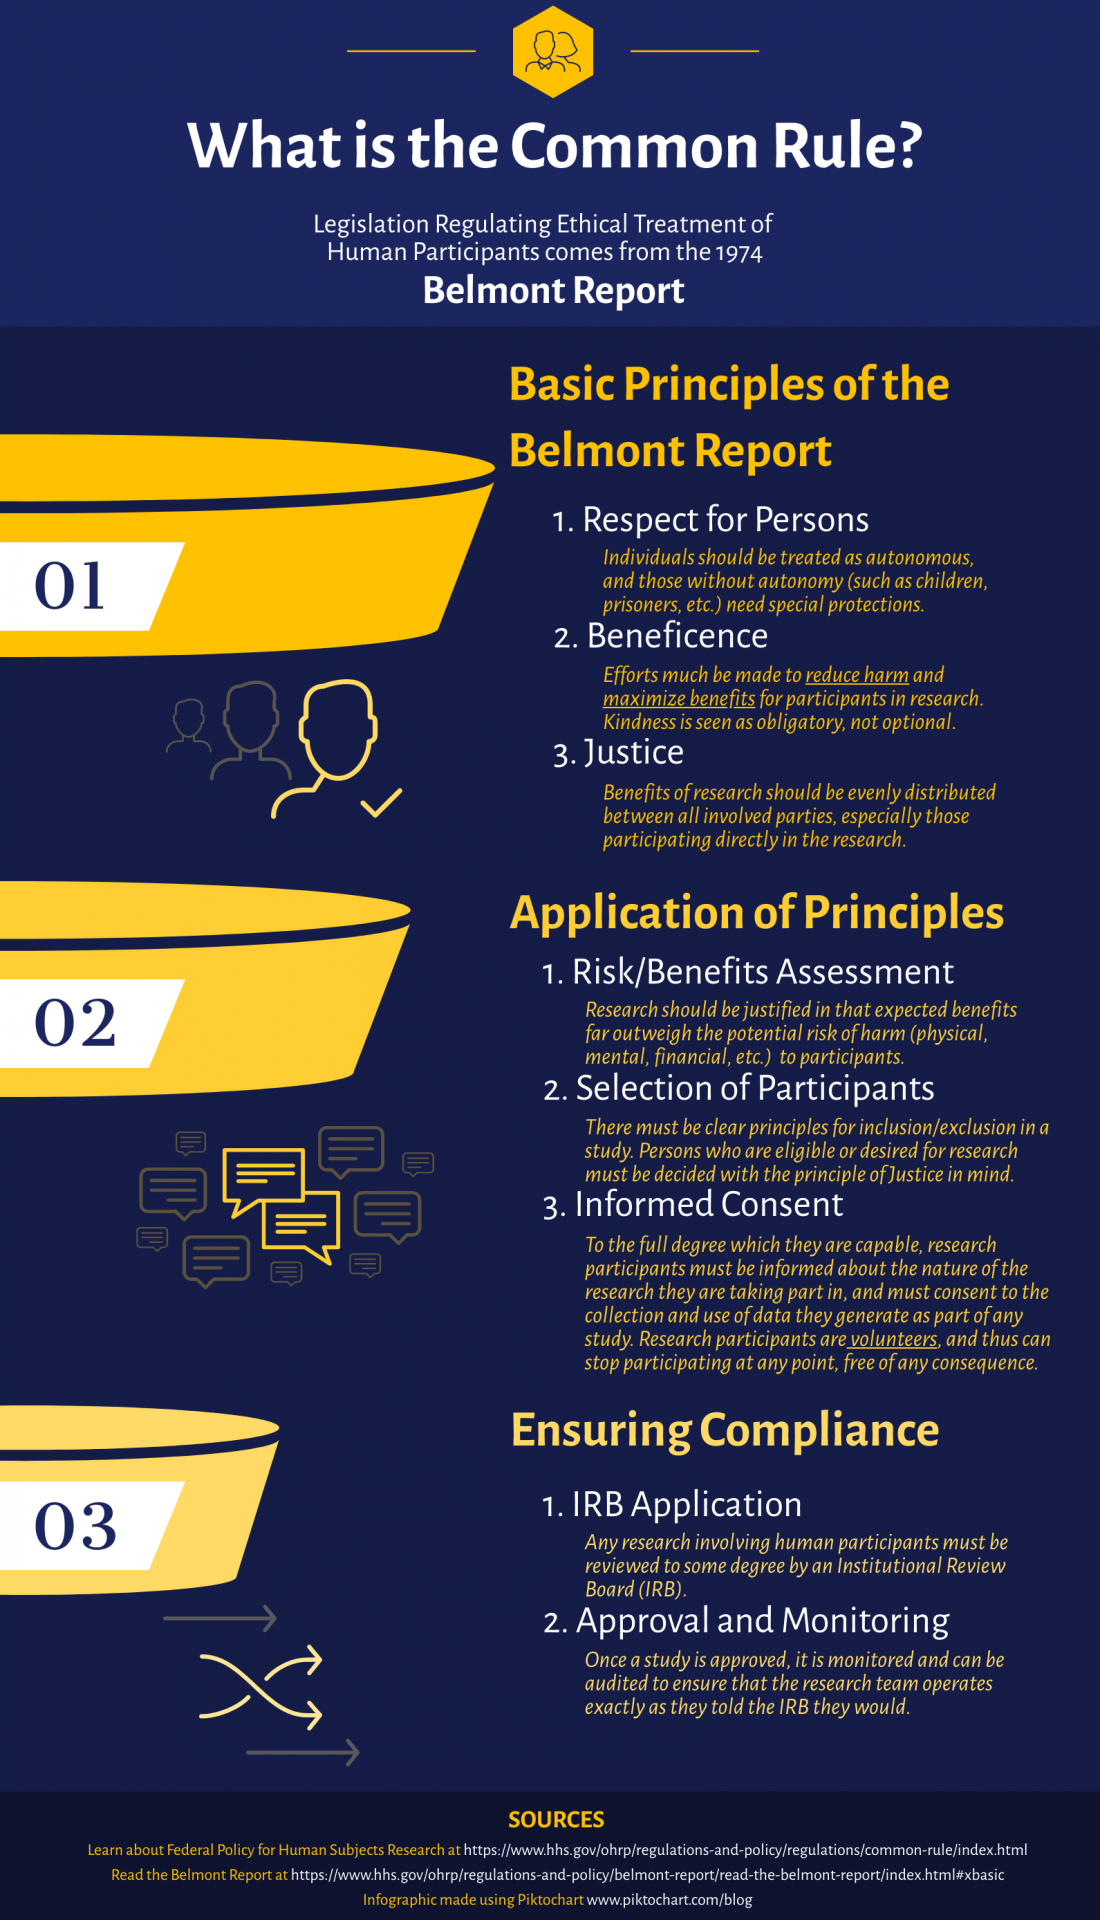 Infograpnic describing the basic principles of ethical research involving human subjects. This chart outlines the Belmont Report principles of Respect, Beneficence, and Justice, which researchers must consider and comply with in order to conduct human subjects research.